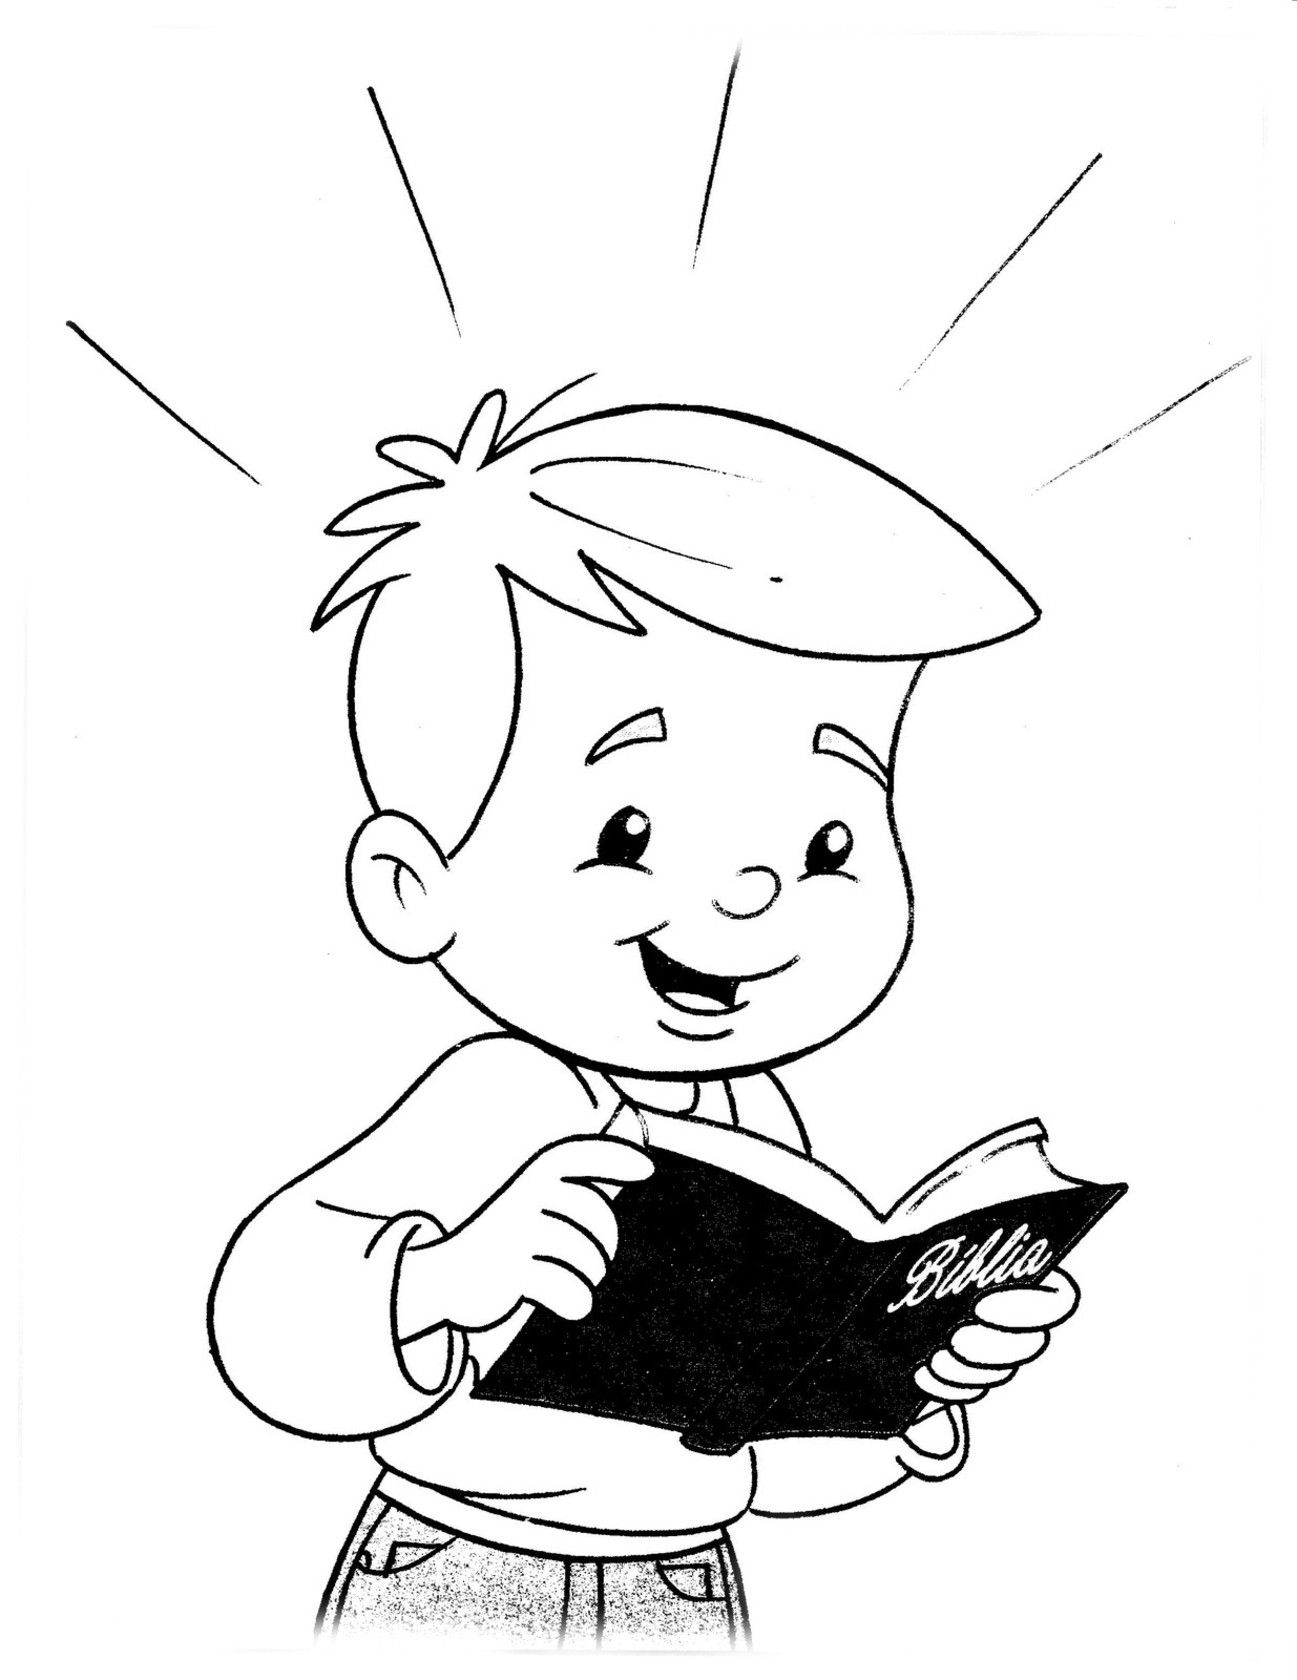 bible coloring pages for preschoolers the best and most comprehensive samson coloring pages for for coloring preschoolers bible pages